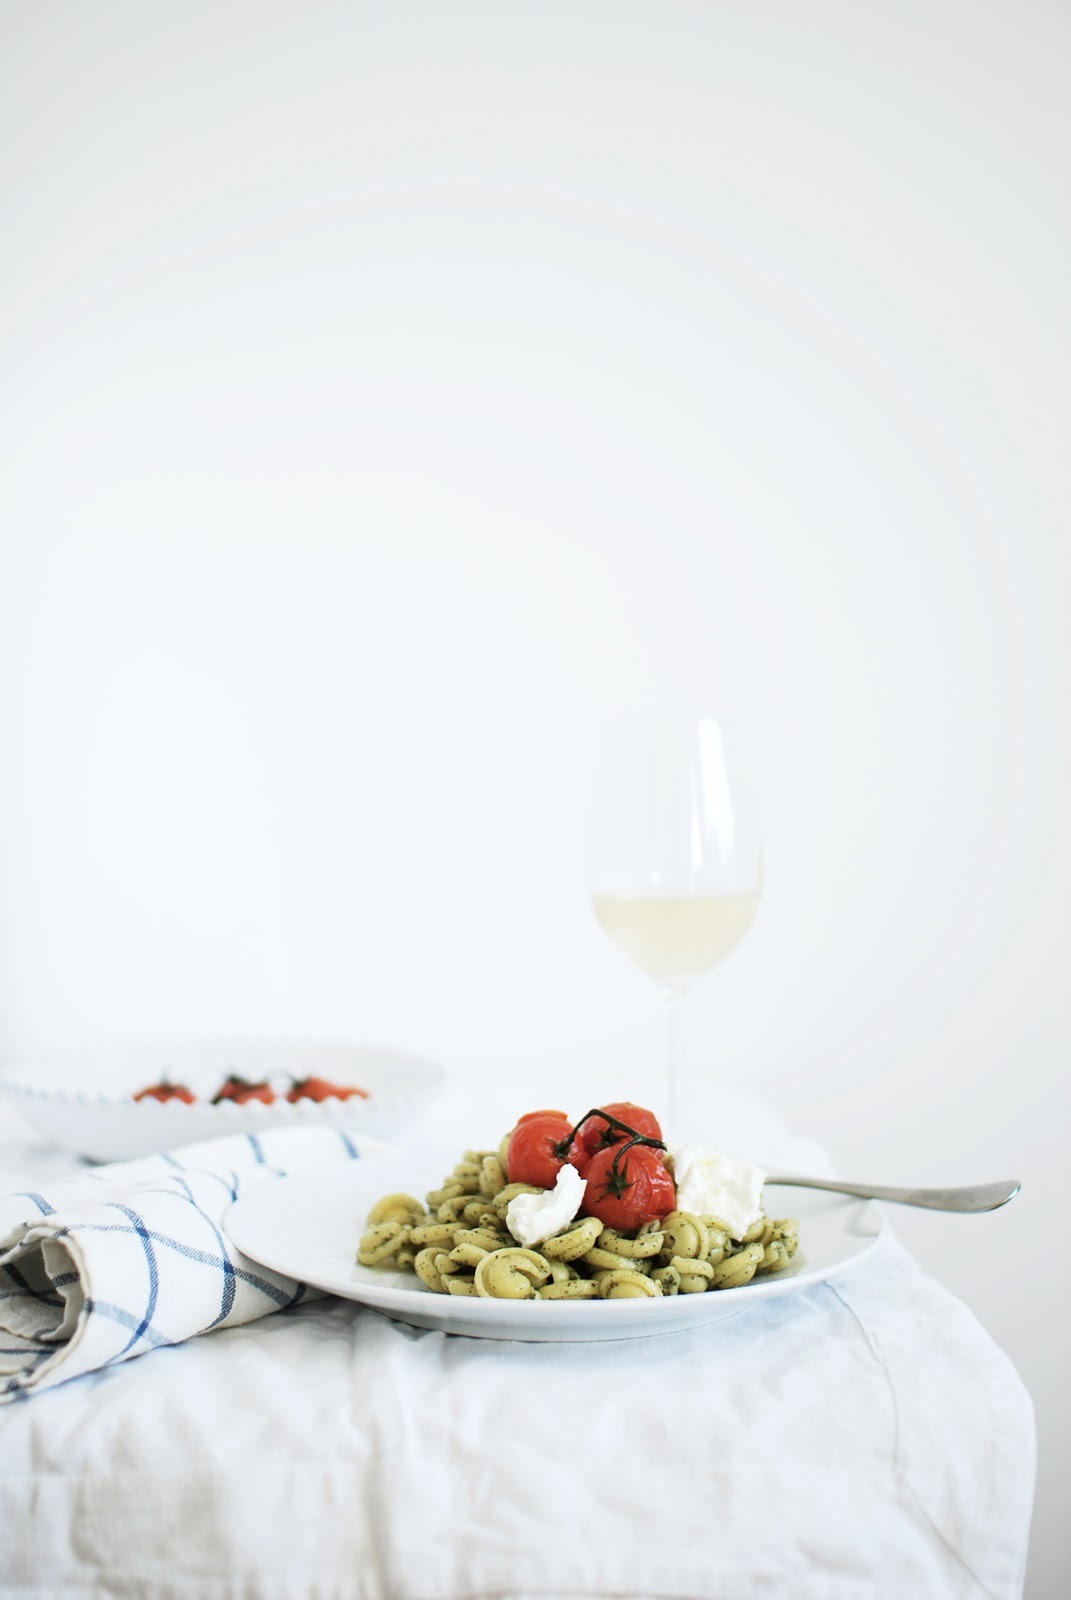 (via In the mood for food: Simplicity)